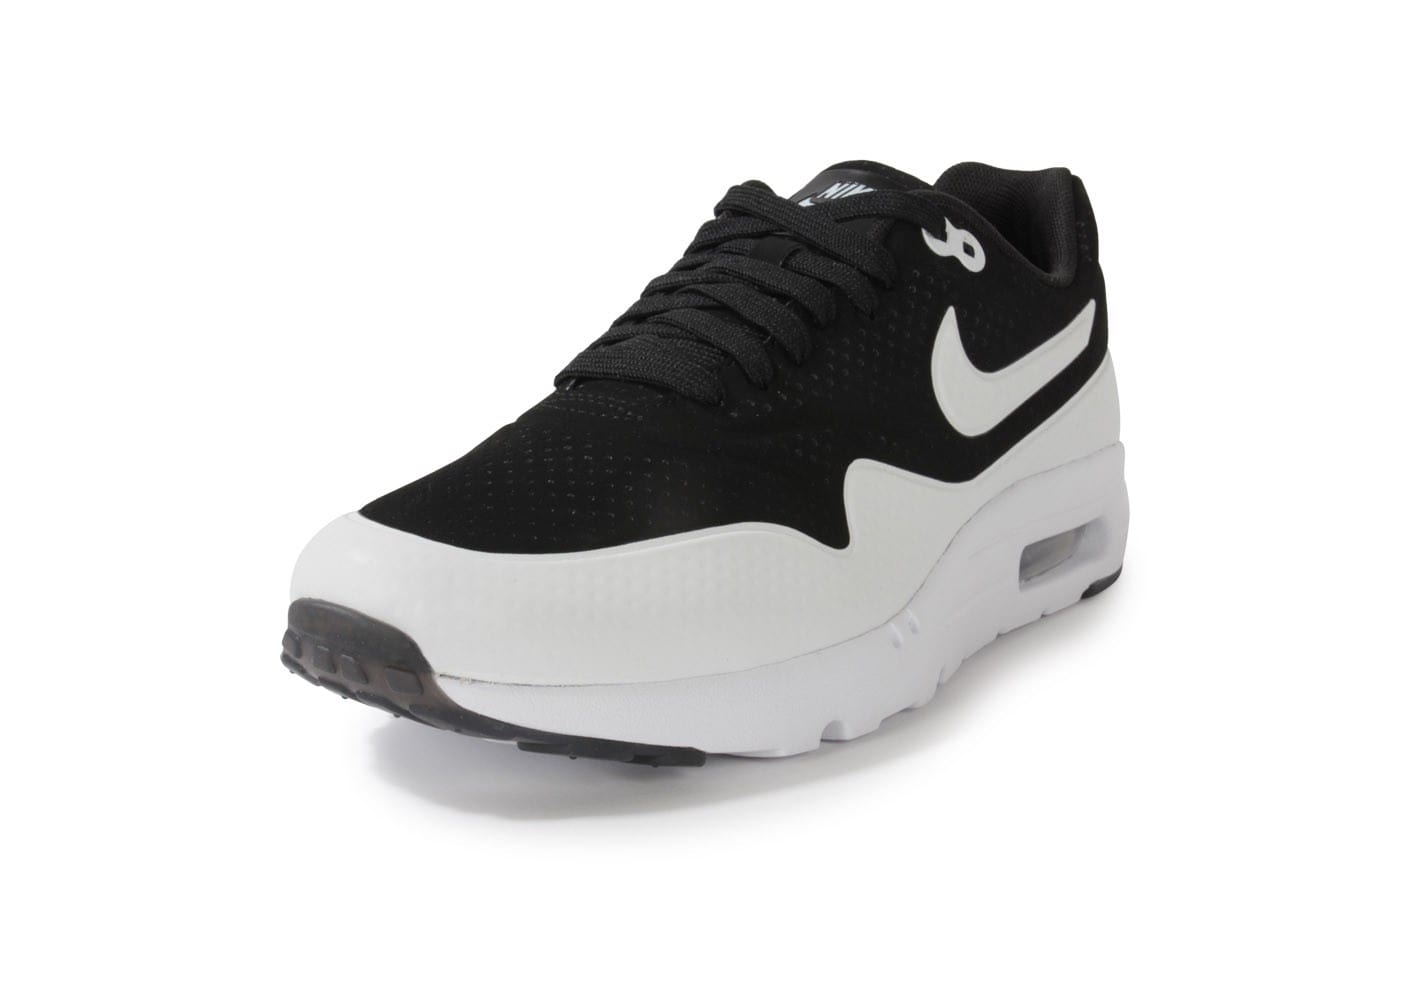 new product ac916 819d7 air max 1 ultra moire pour femme